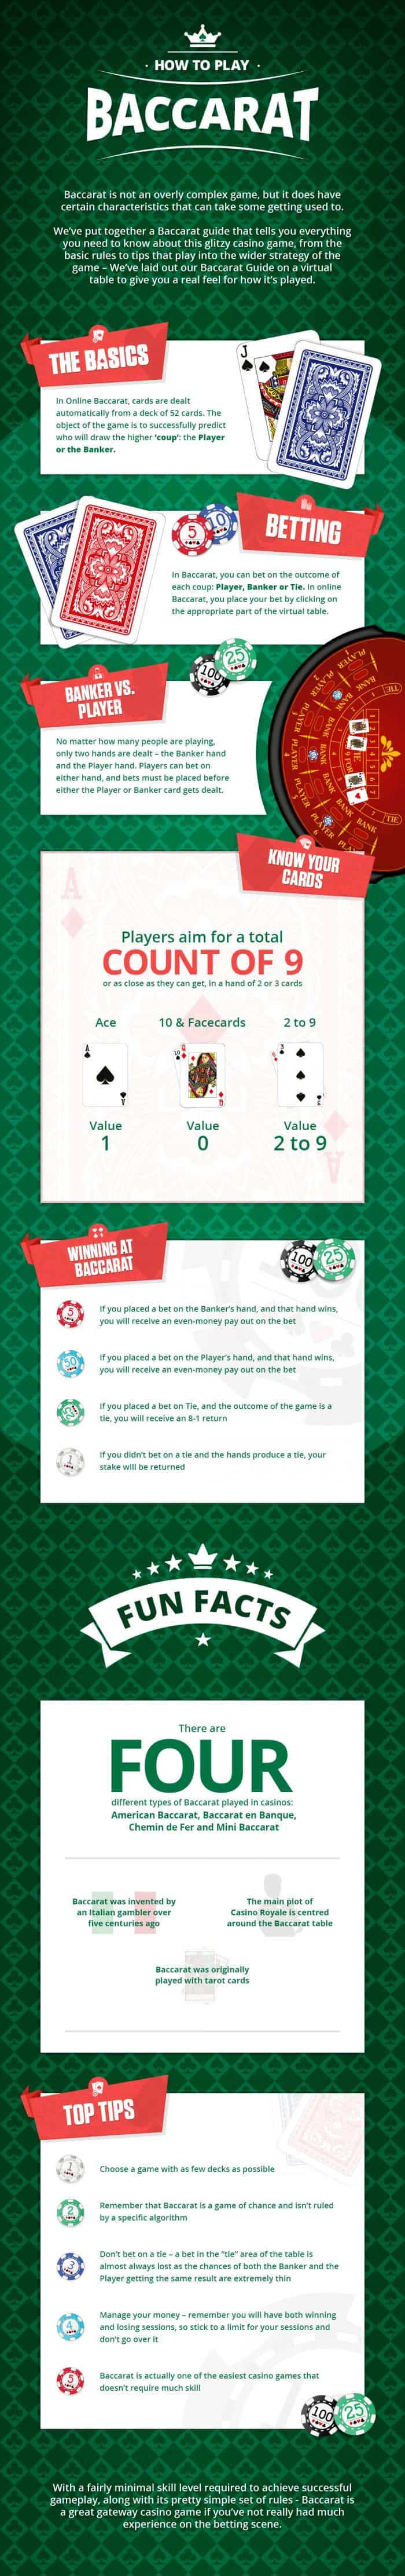 How To Play Baccarat Infographic